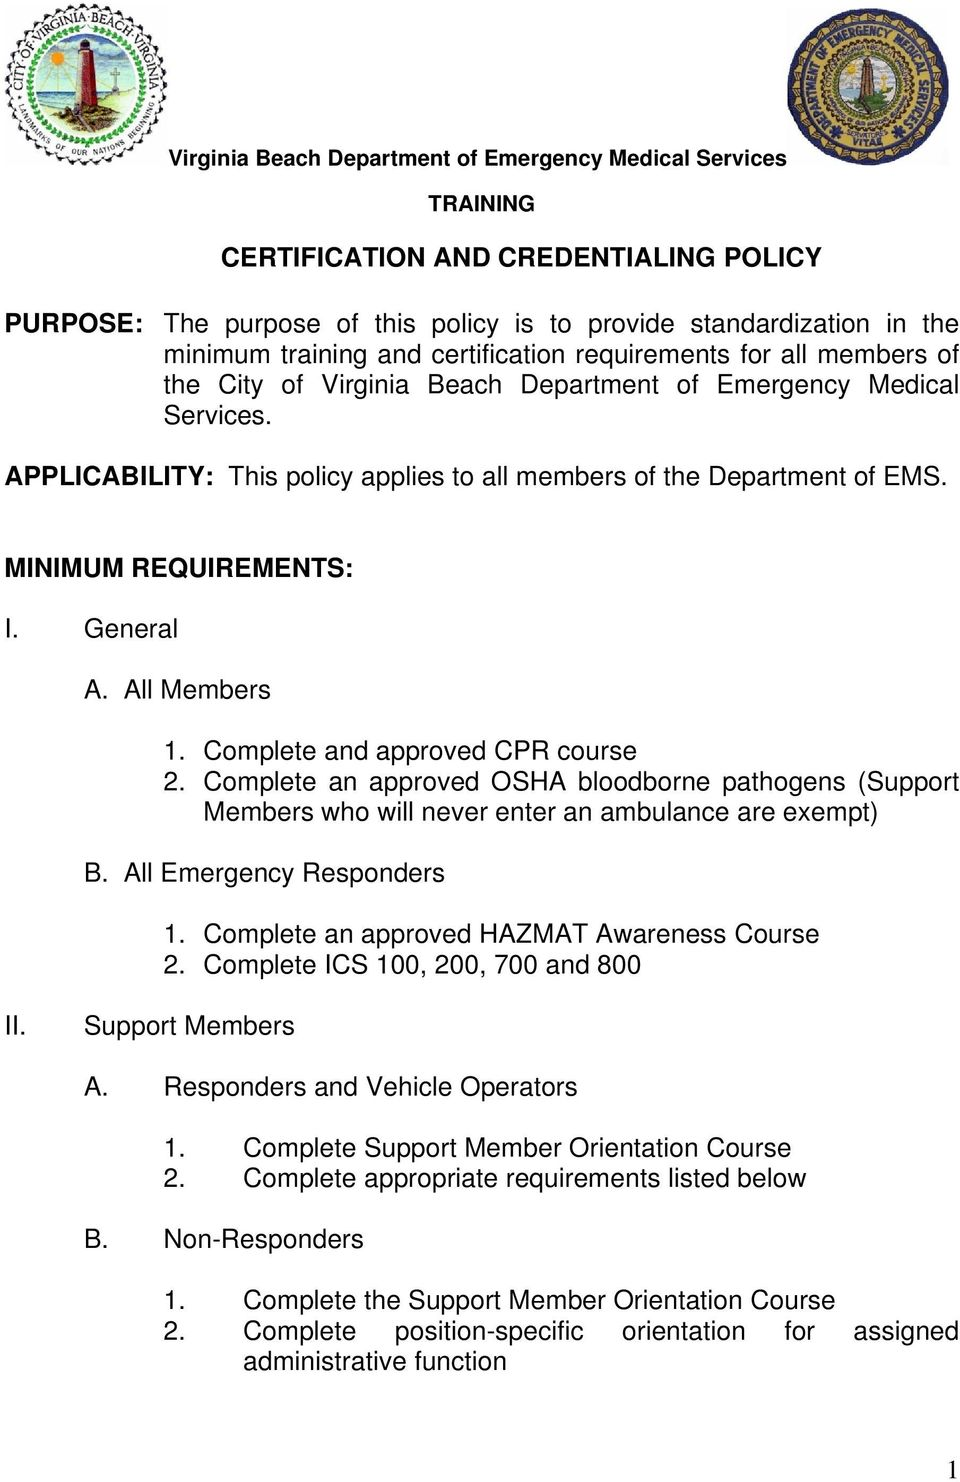 MINIMUM REQUIREMENTS: I. General A. All Members 1. Complete and approved CPR course 2. Complete an approved OSHA bloodborne pathogens (Support Members who will never enter an ambulance are exempt) B.